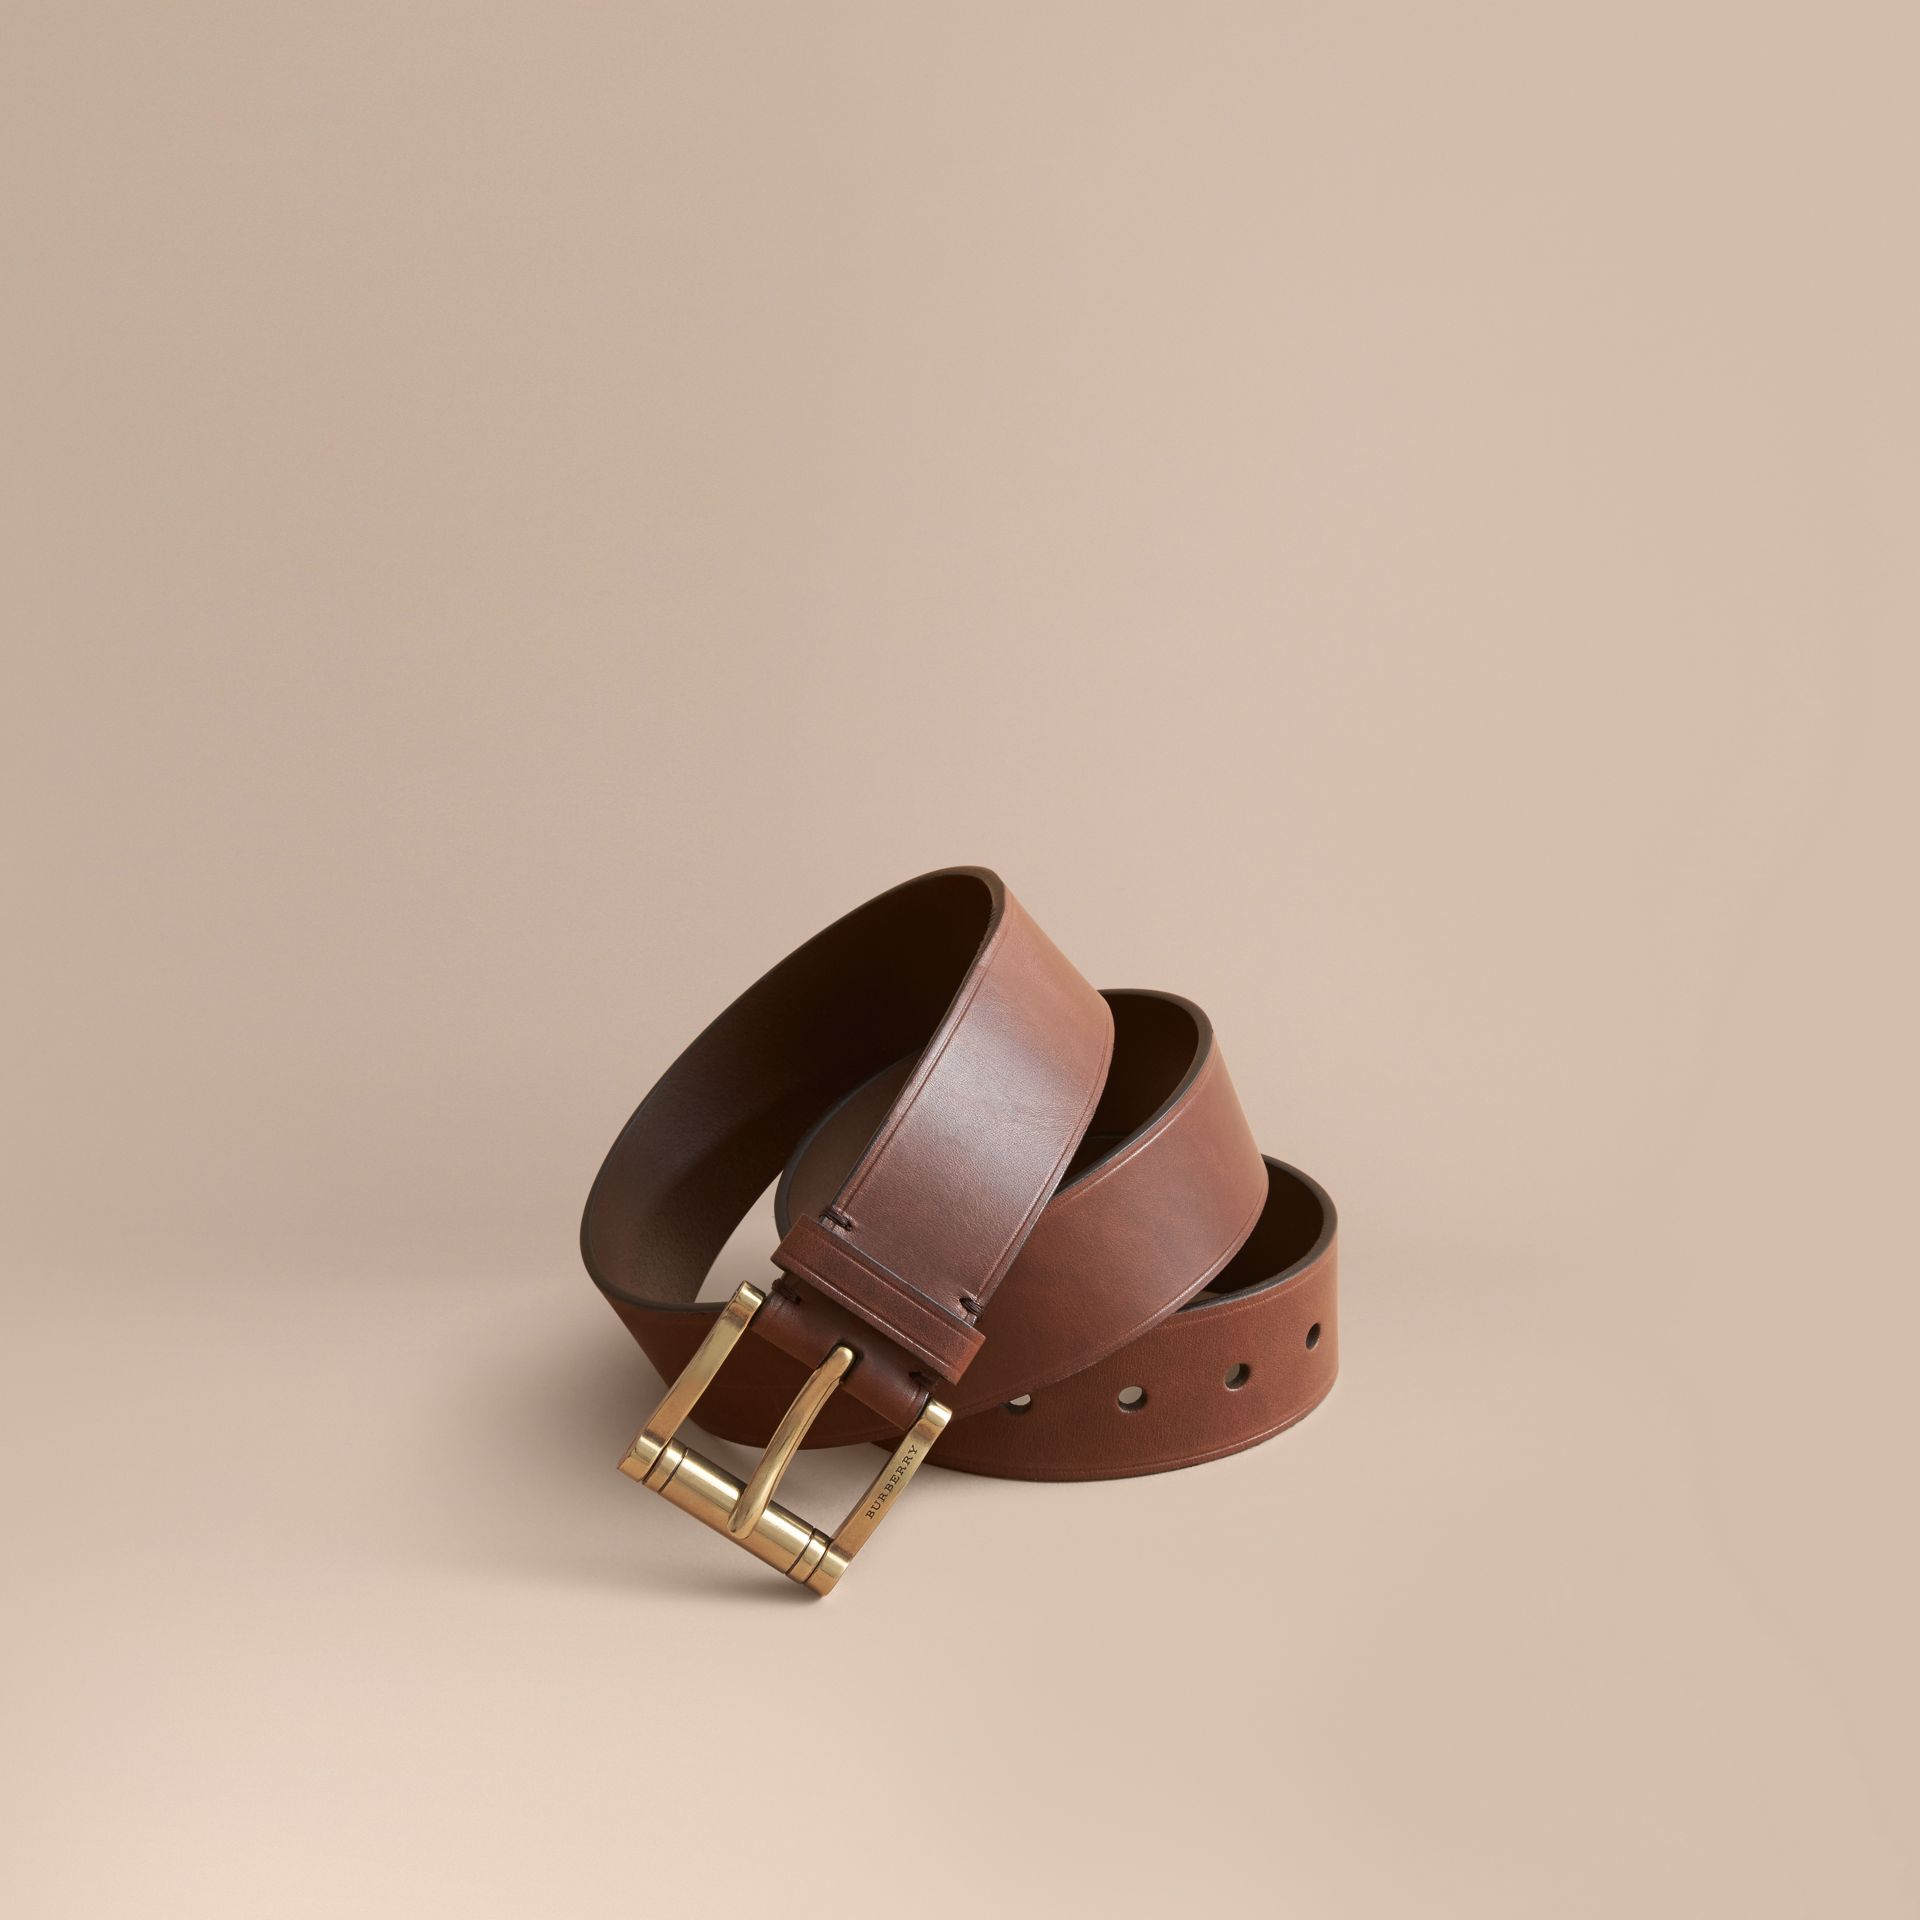 Brass Buckle Leather Belt in Auburn - Men | Burberry - gallery image 1